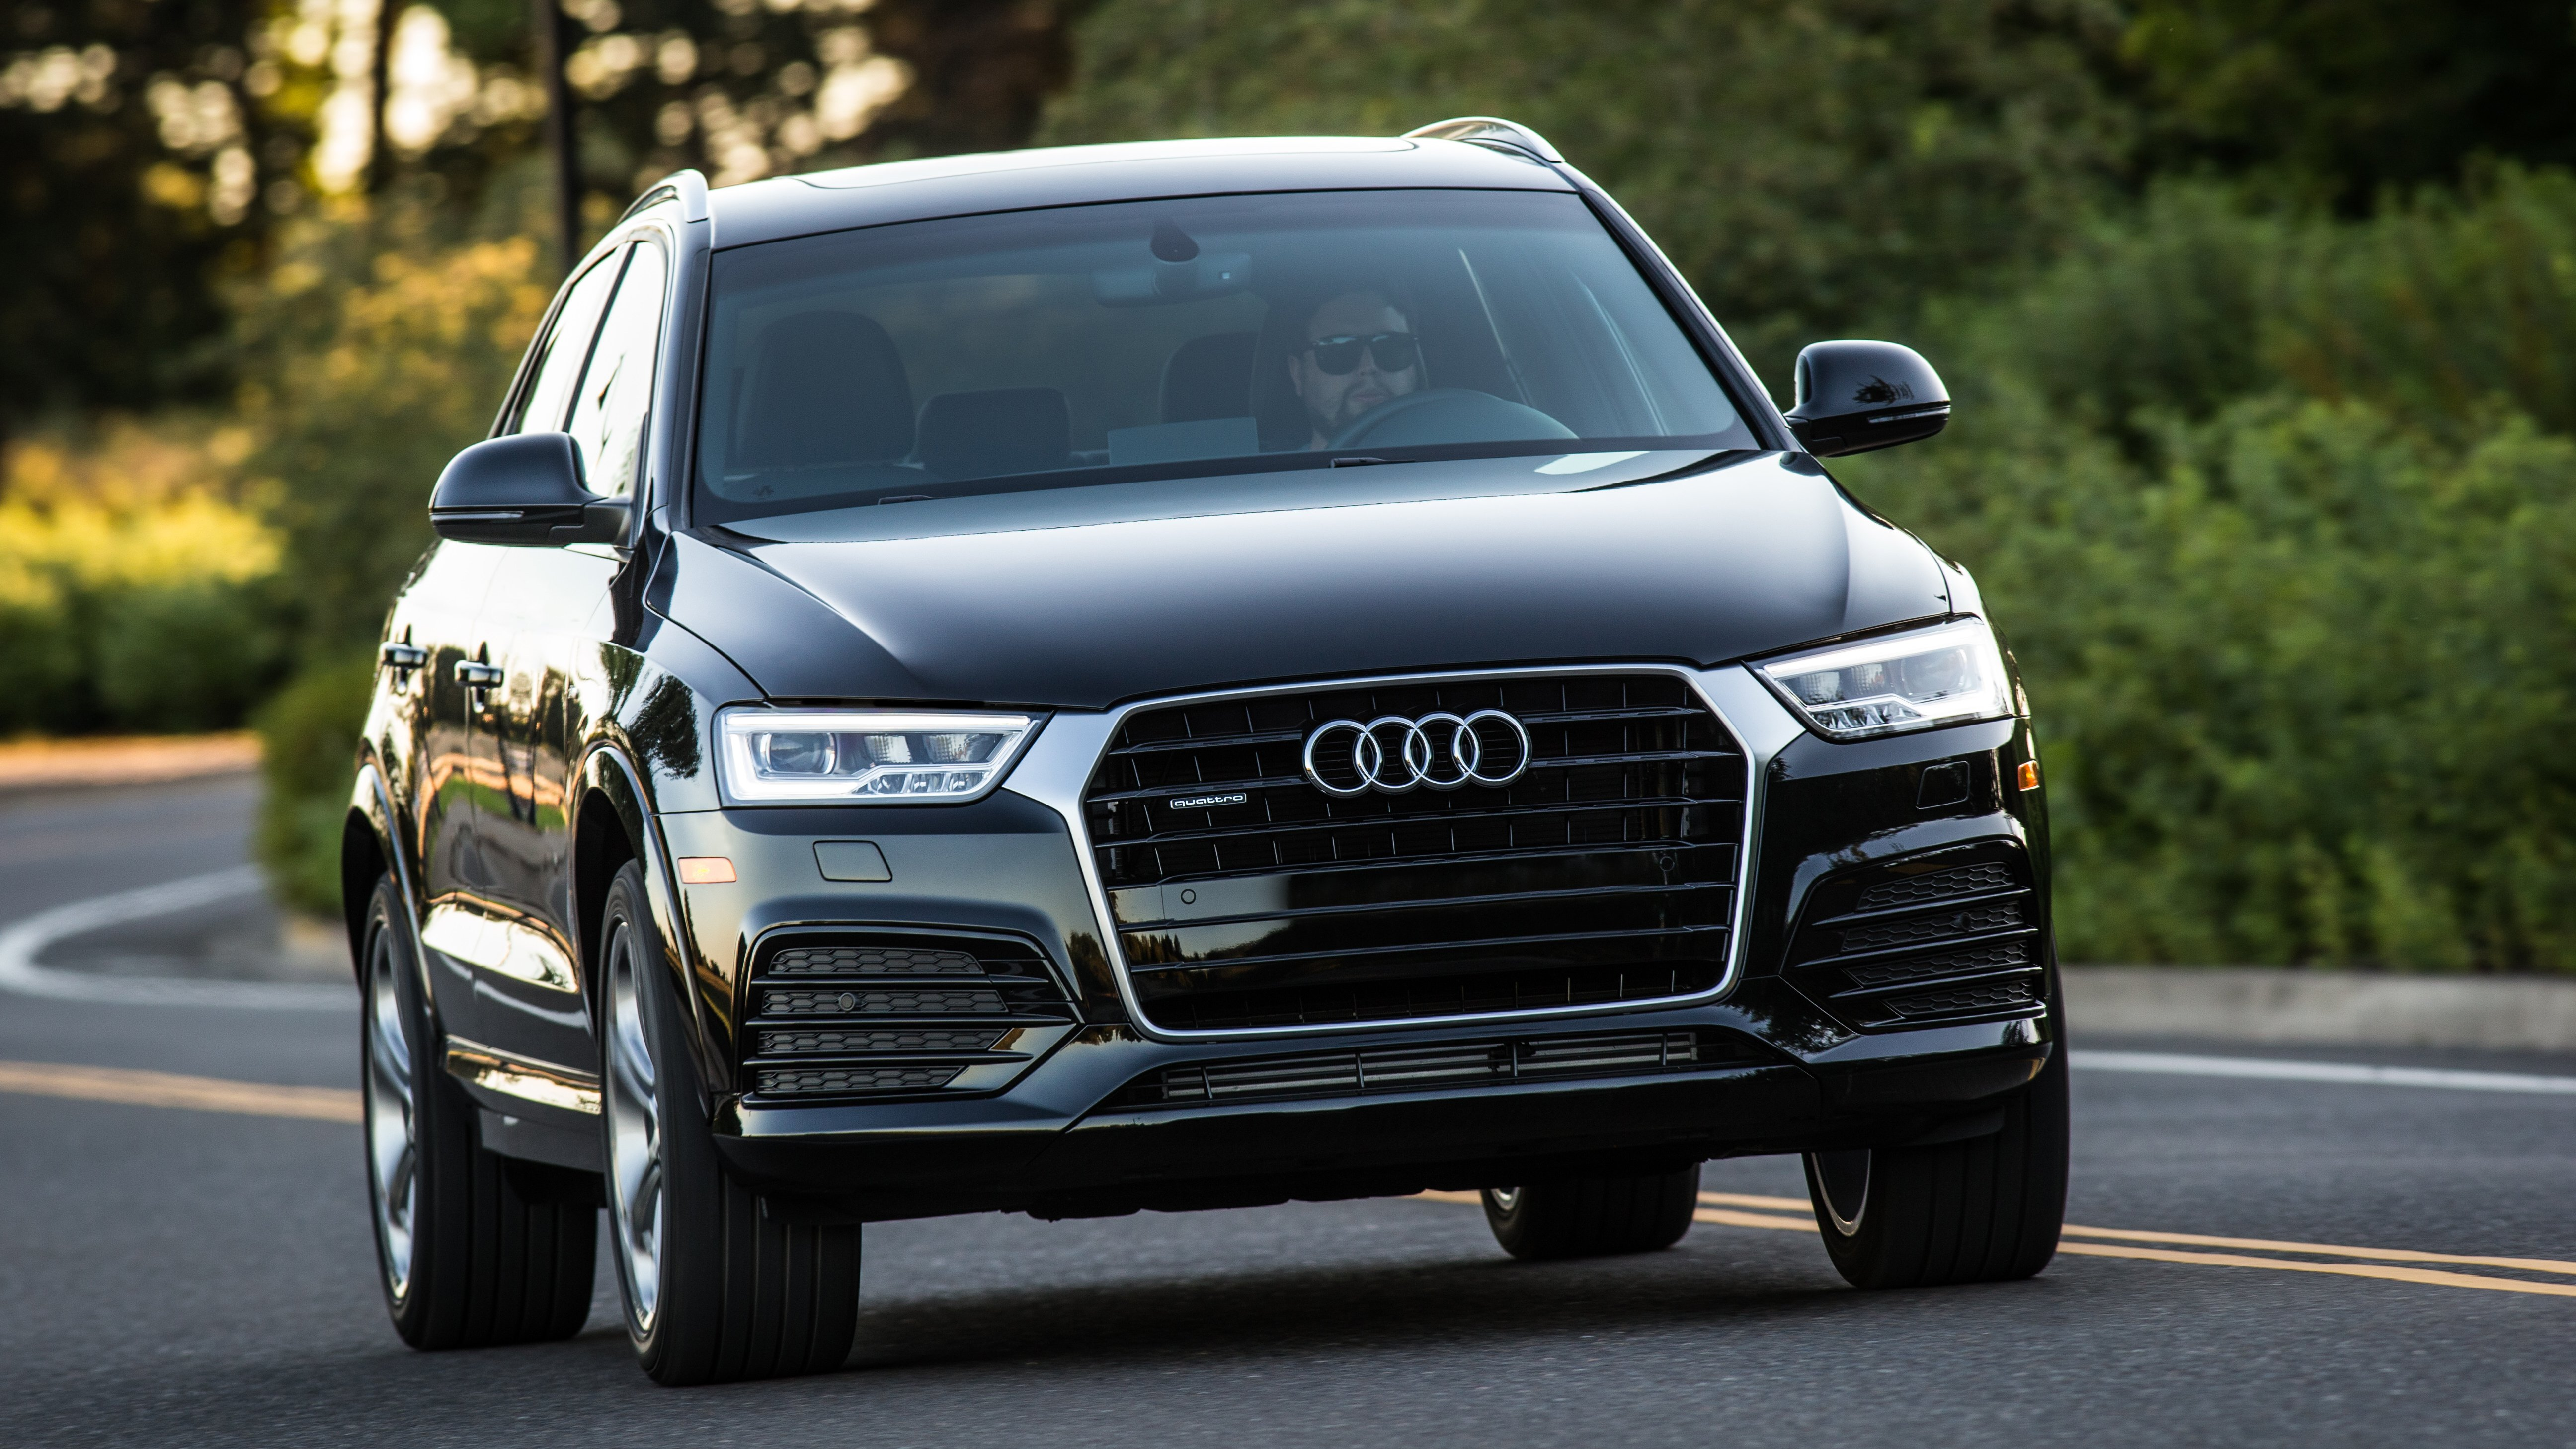 Audi announces pricing for the updated 2016 Q3 crossover